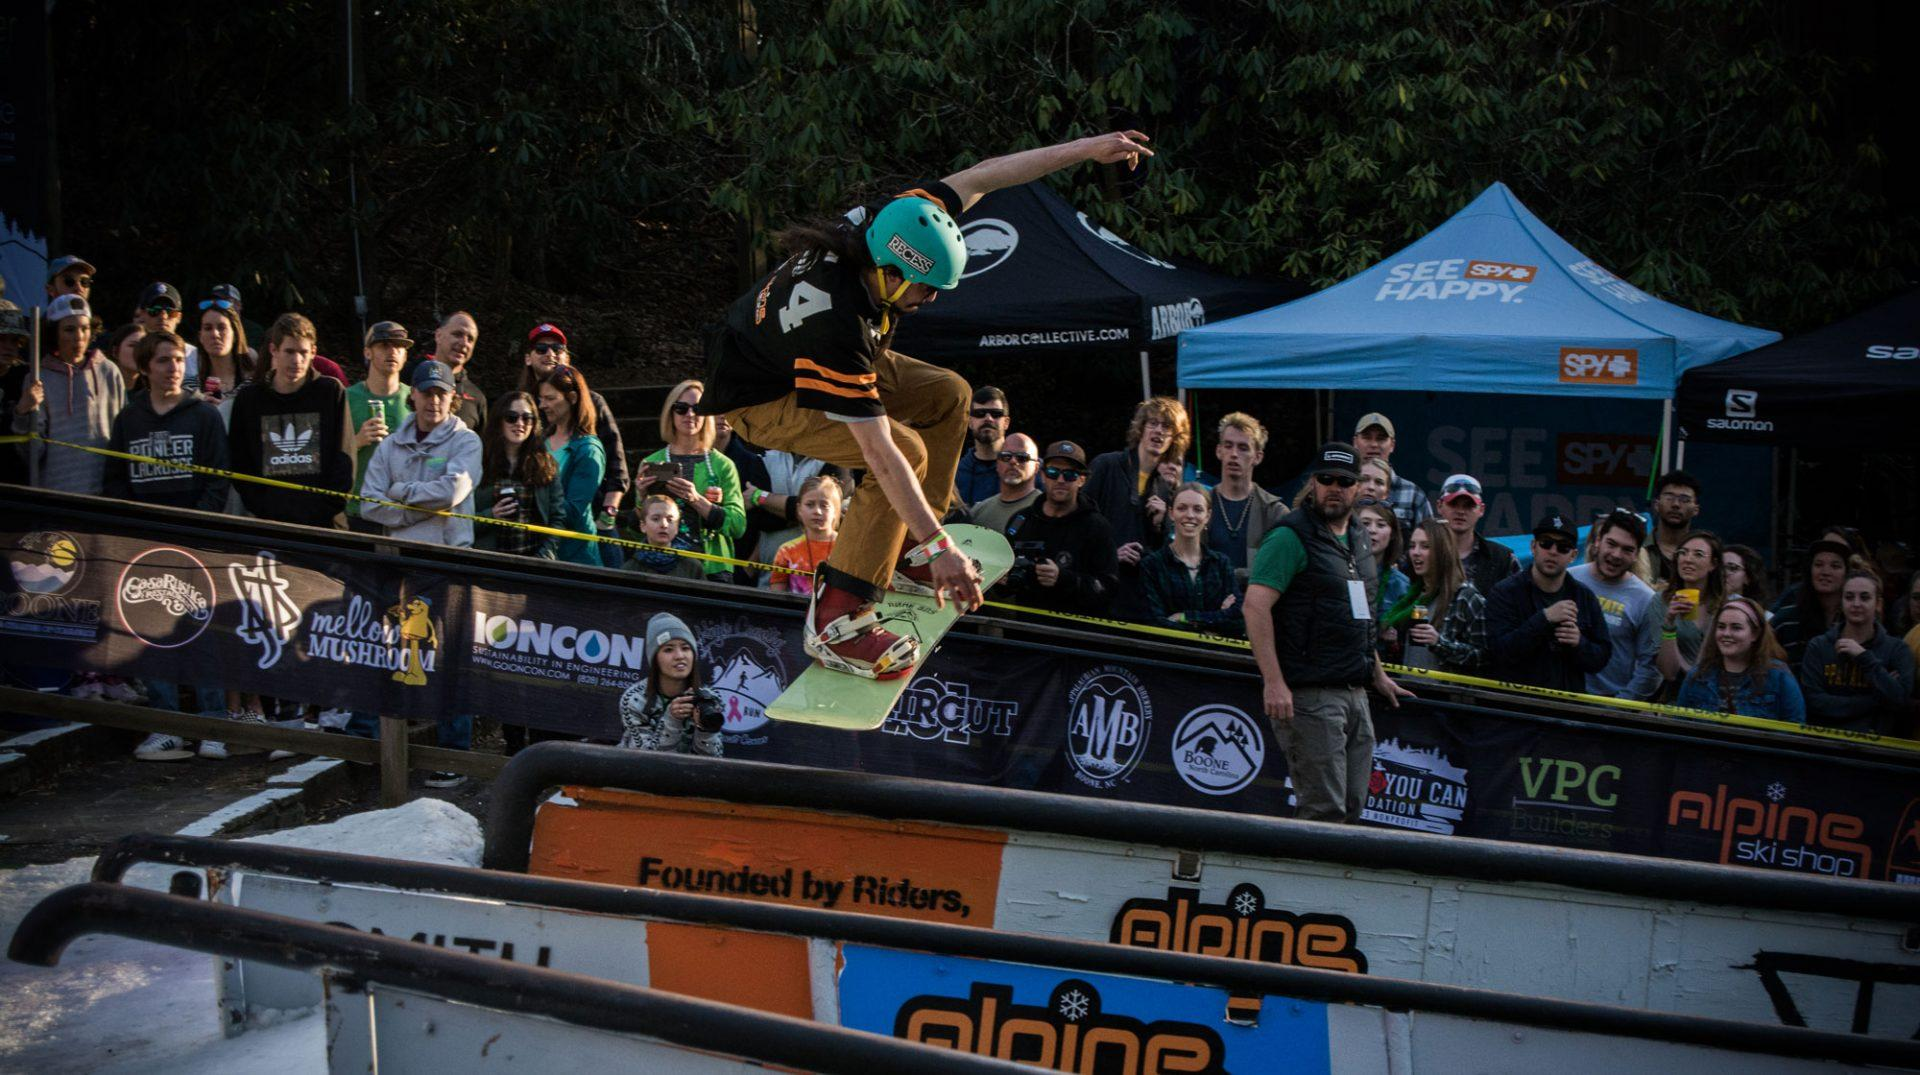 One of the competitors of Rail Jam jumping in order to boardslide a rail.